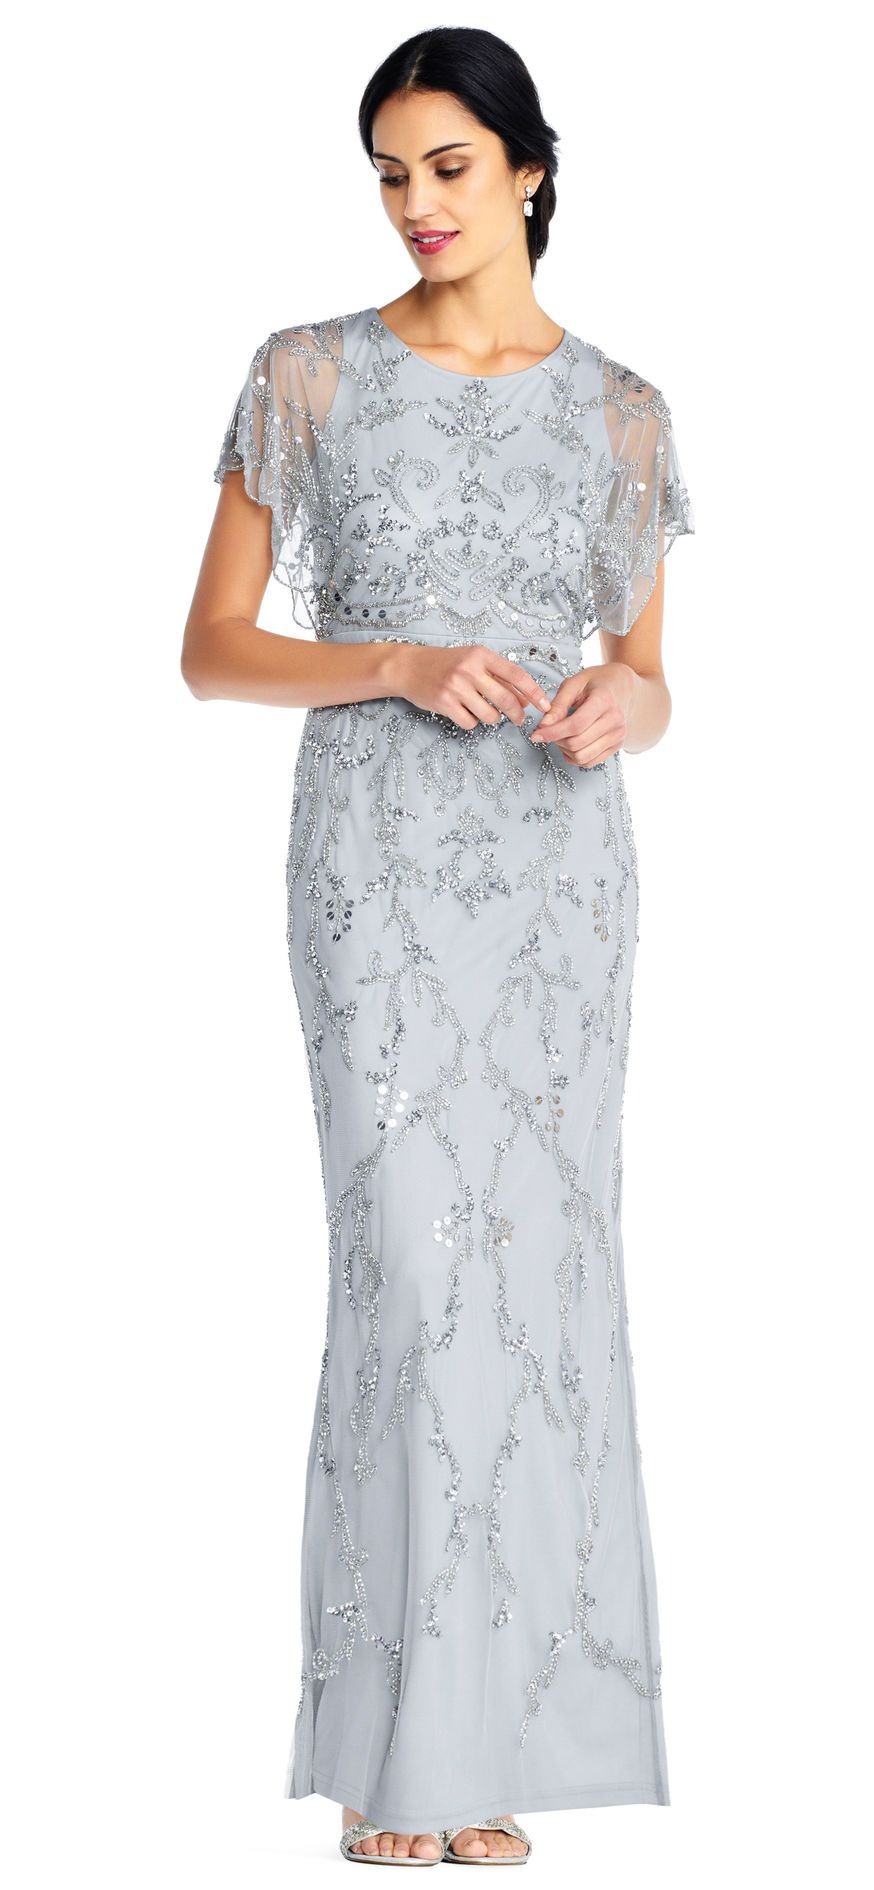 76bda00f88 Floral Beaded Gown with Scalloped Flutter Sleeves